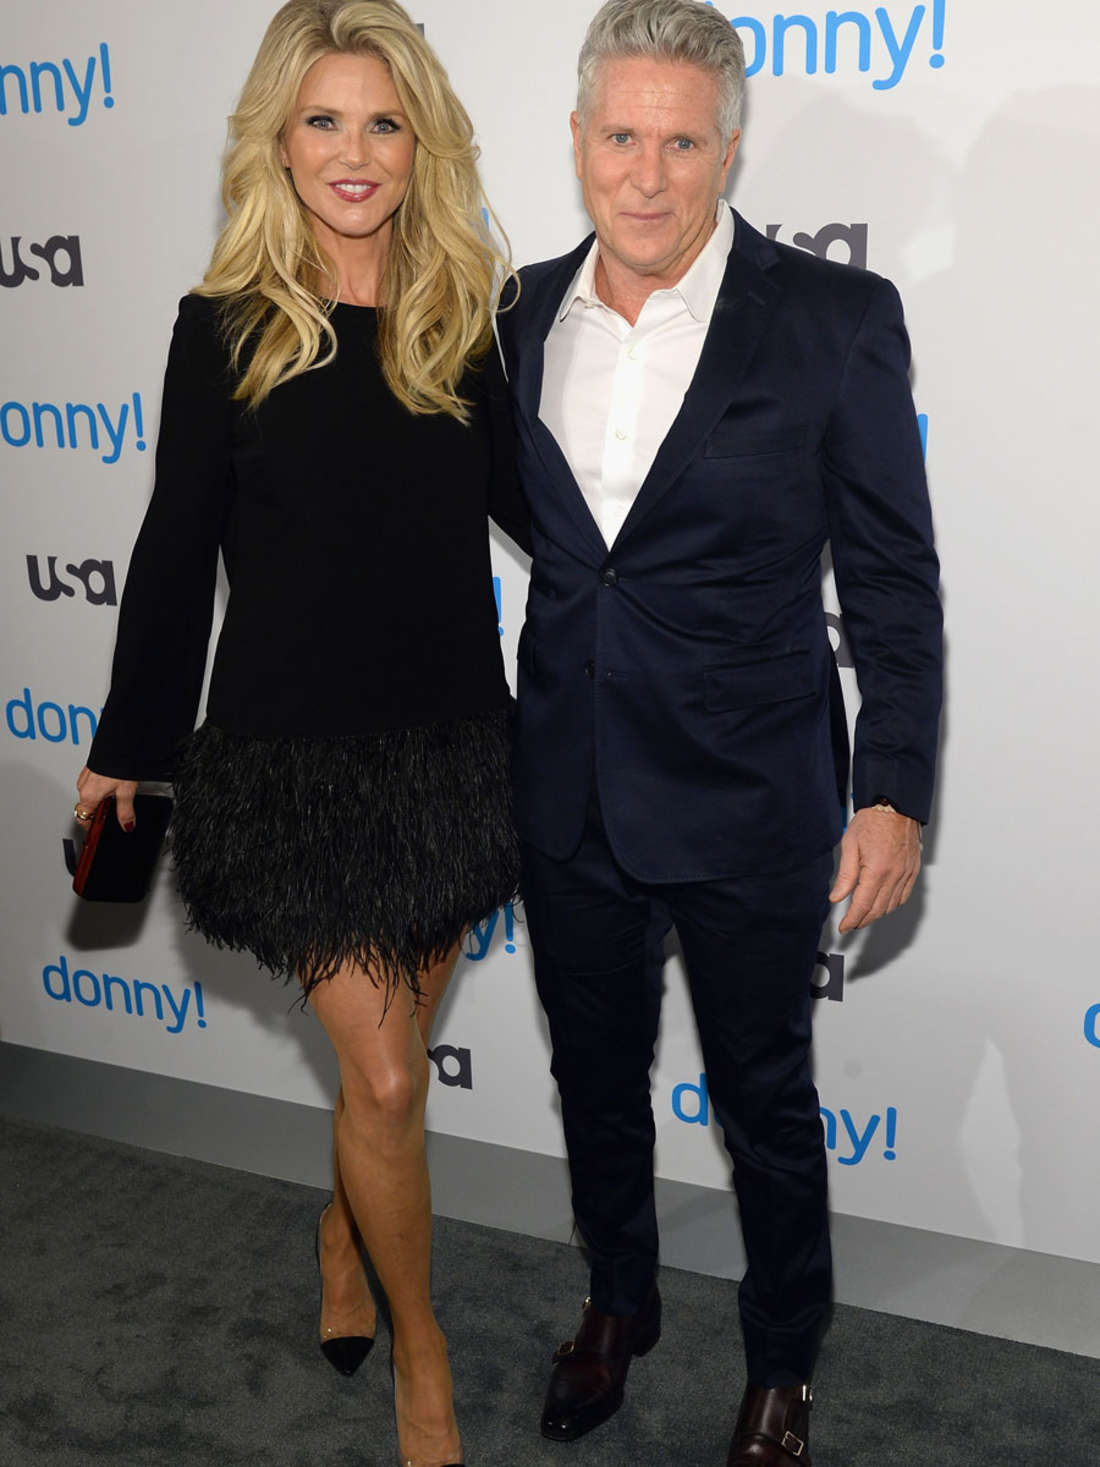 Christie Brinkley Donny! Premiere in New York City